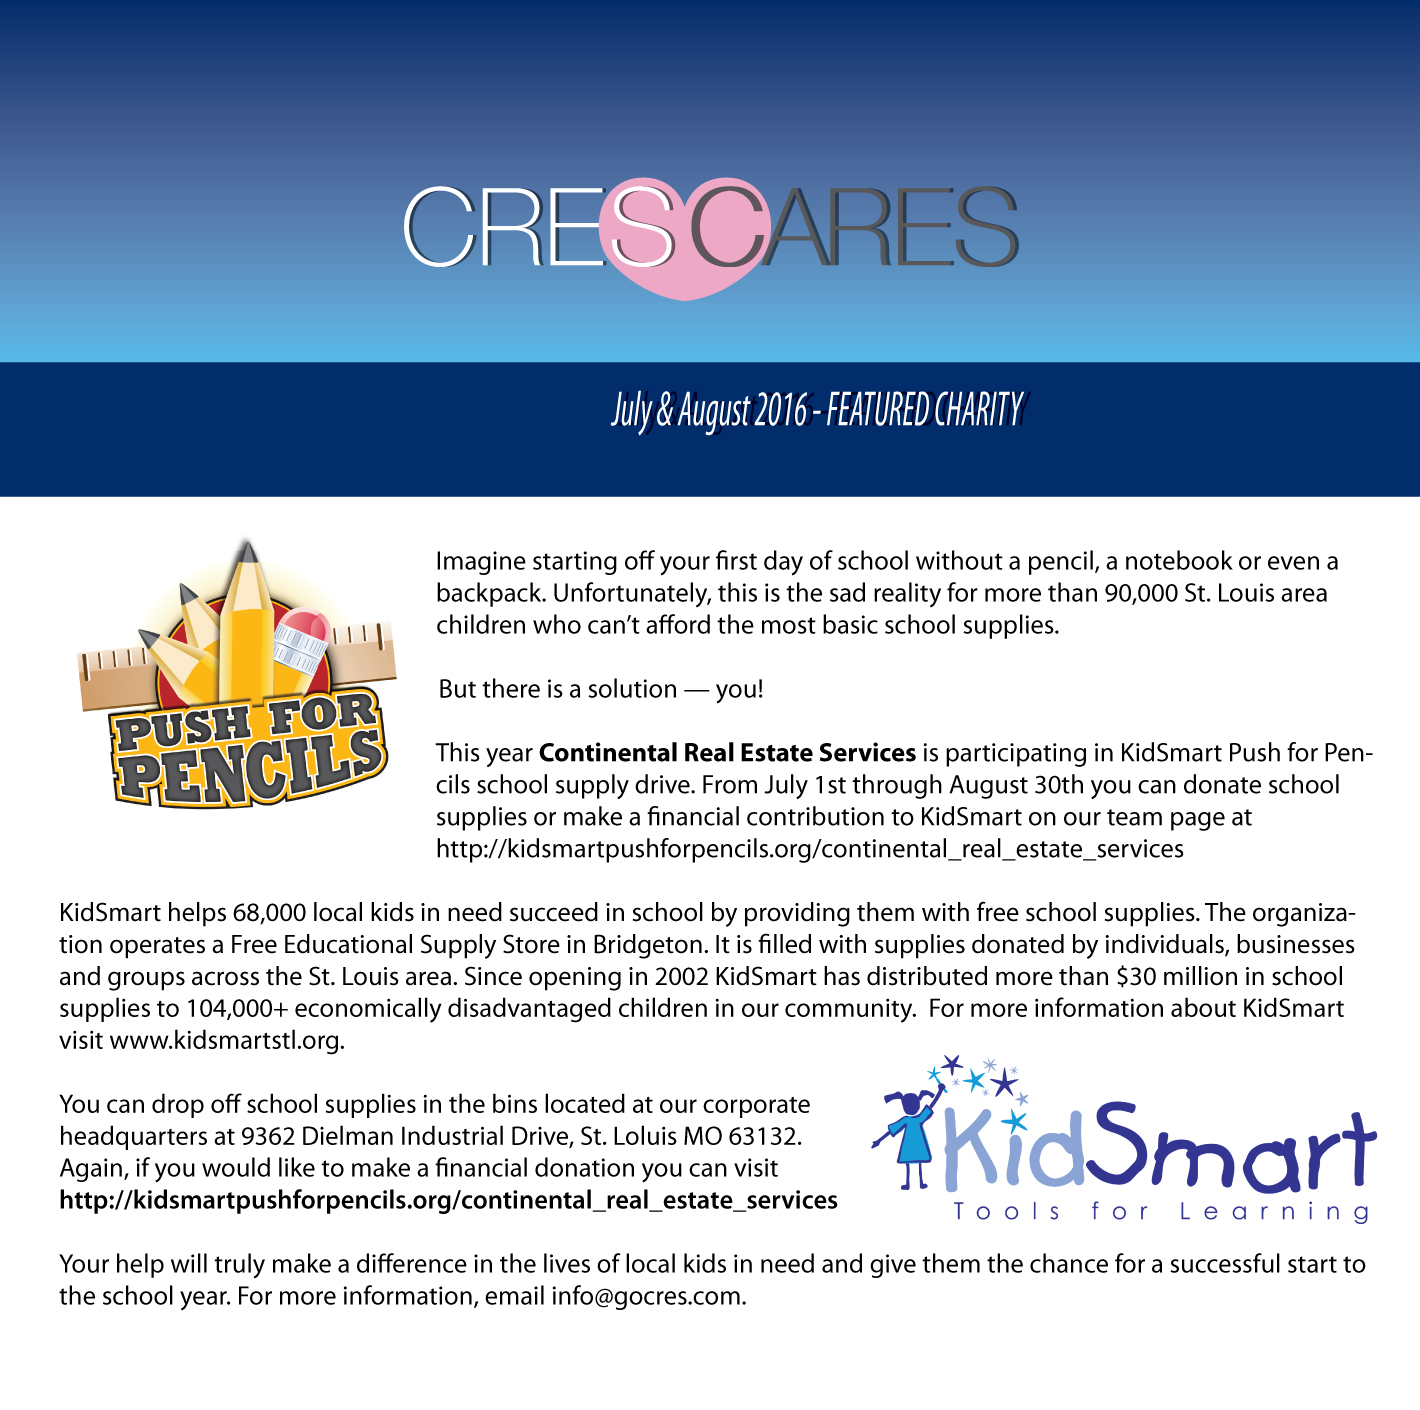 CRES-Cares-July-2016-Featered-CharitySmaller